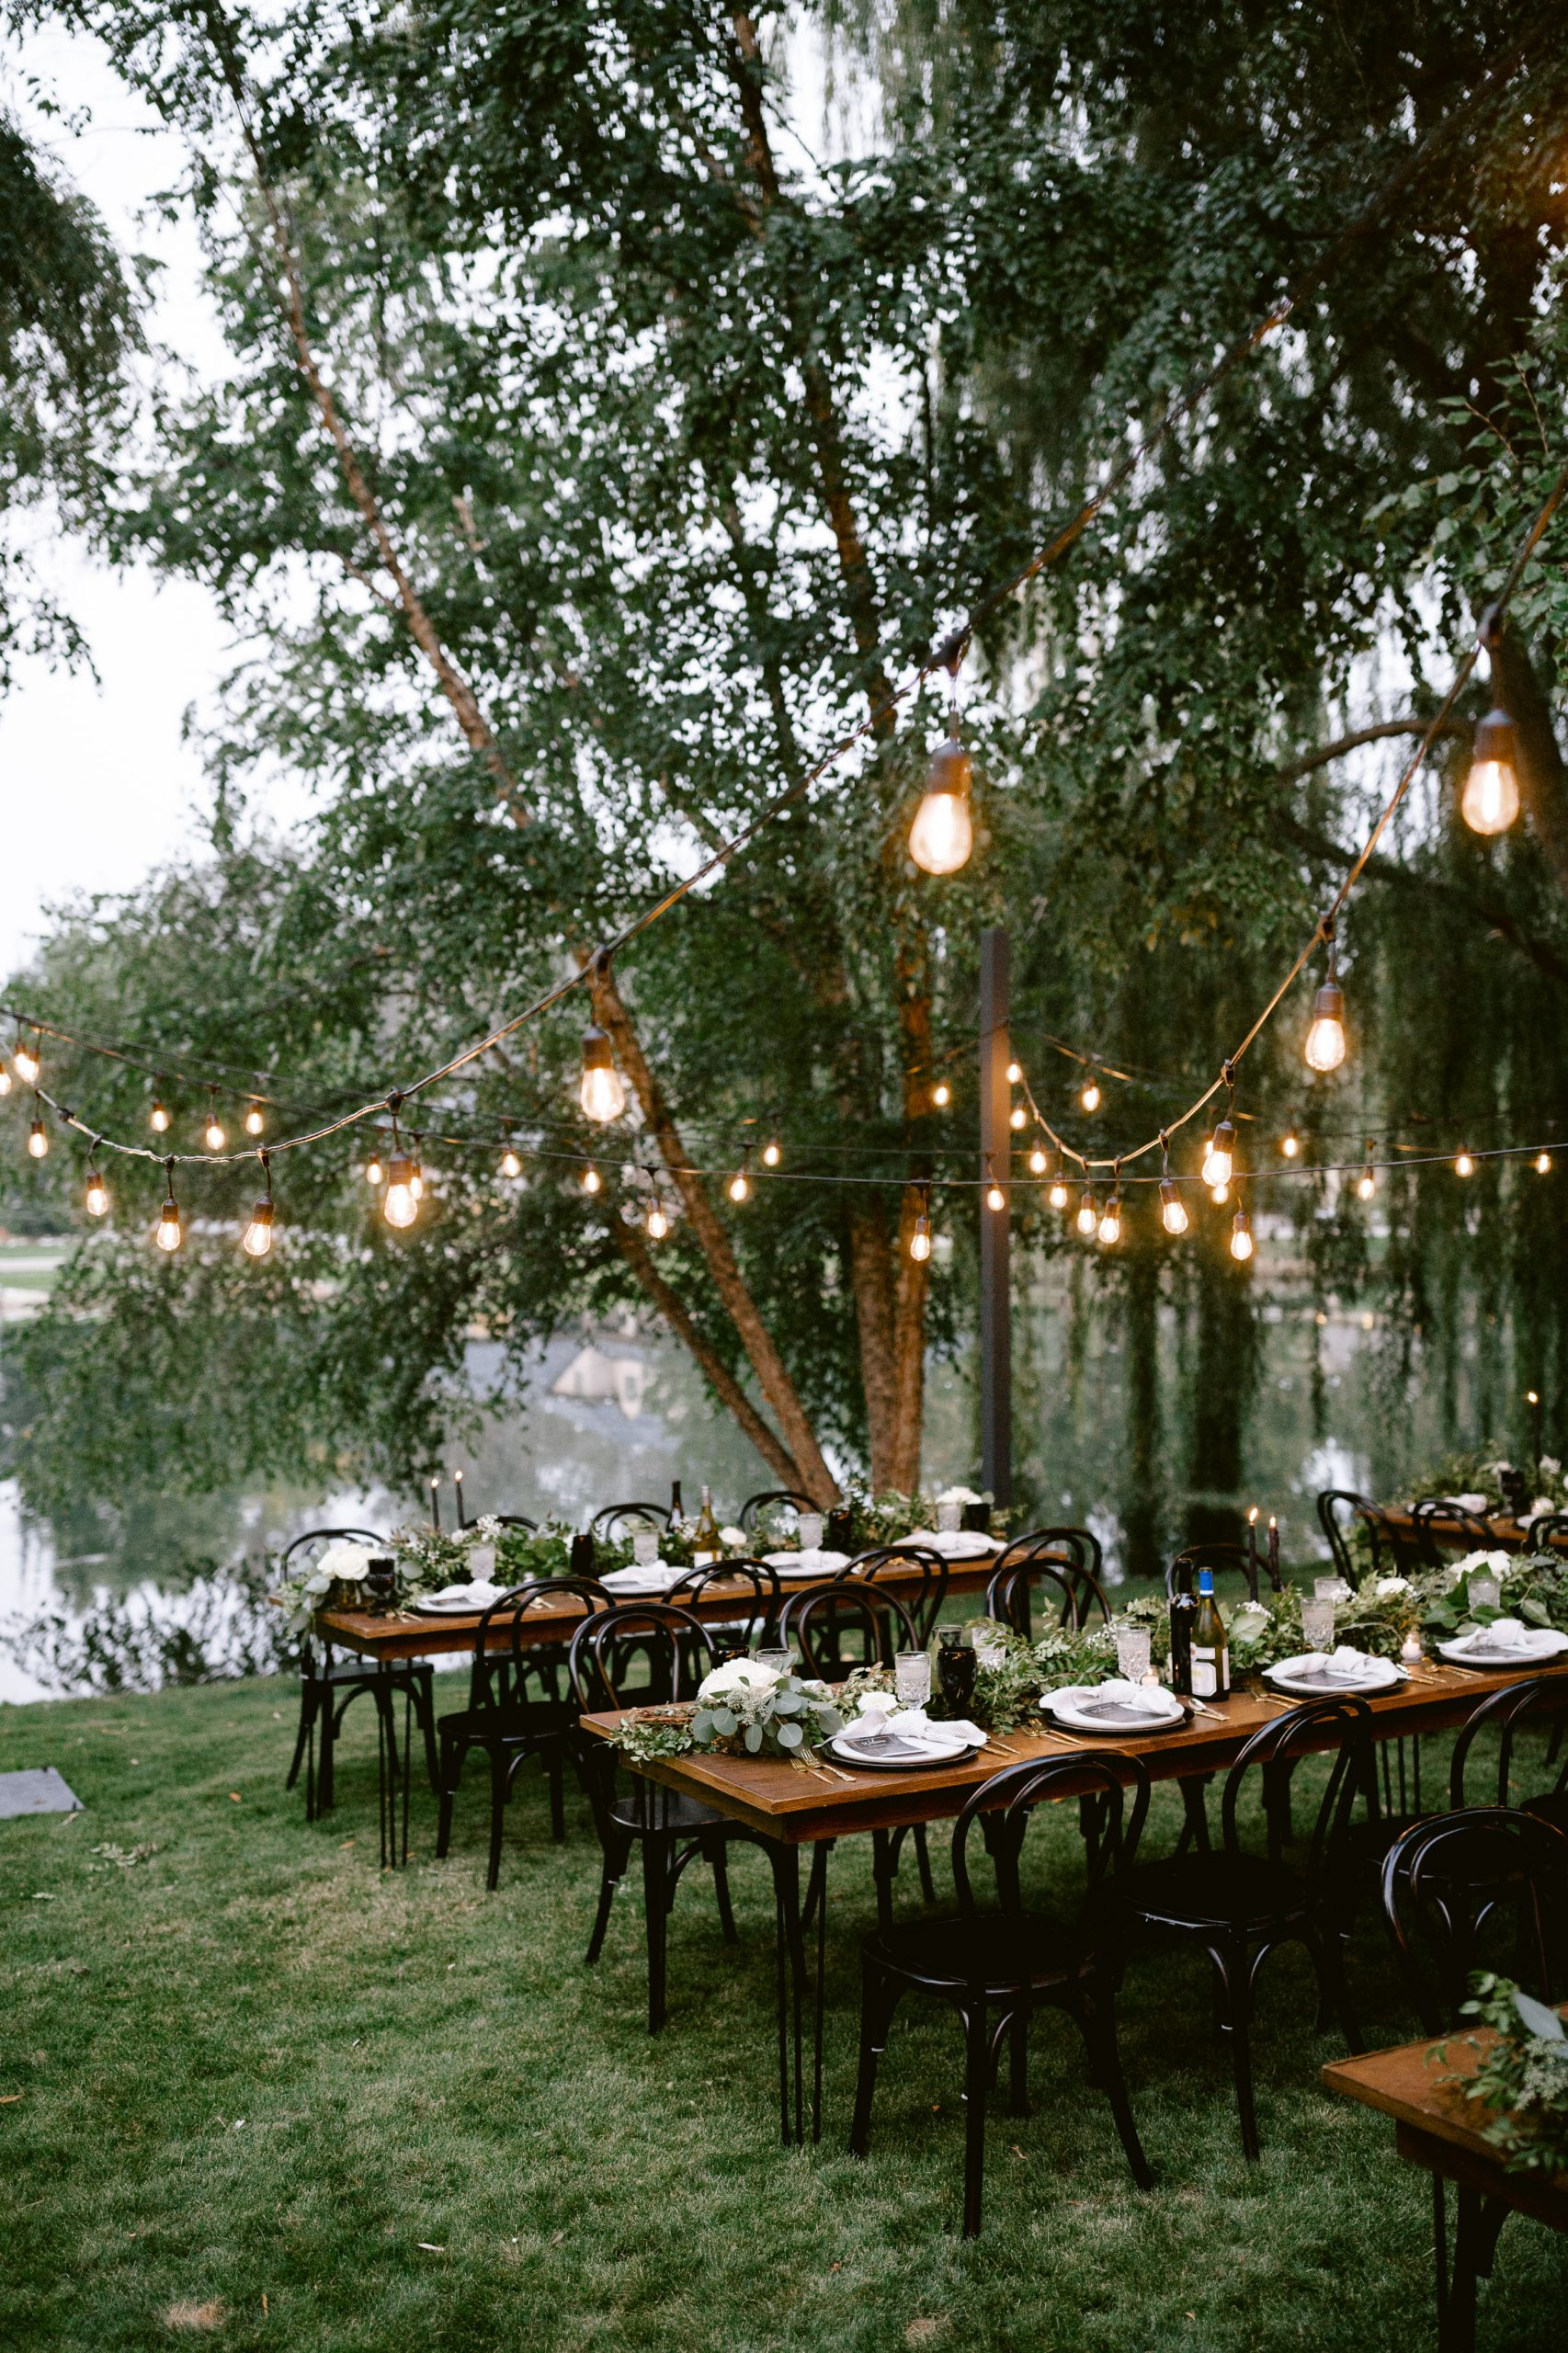 Everything about this set-up is magical!  Our modern white plates and gold flatware rentals look even better under strings of outdoor lights.